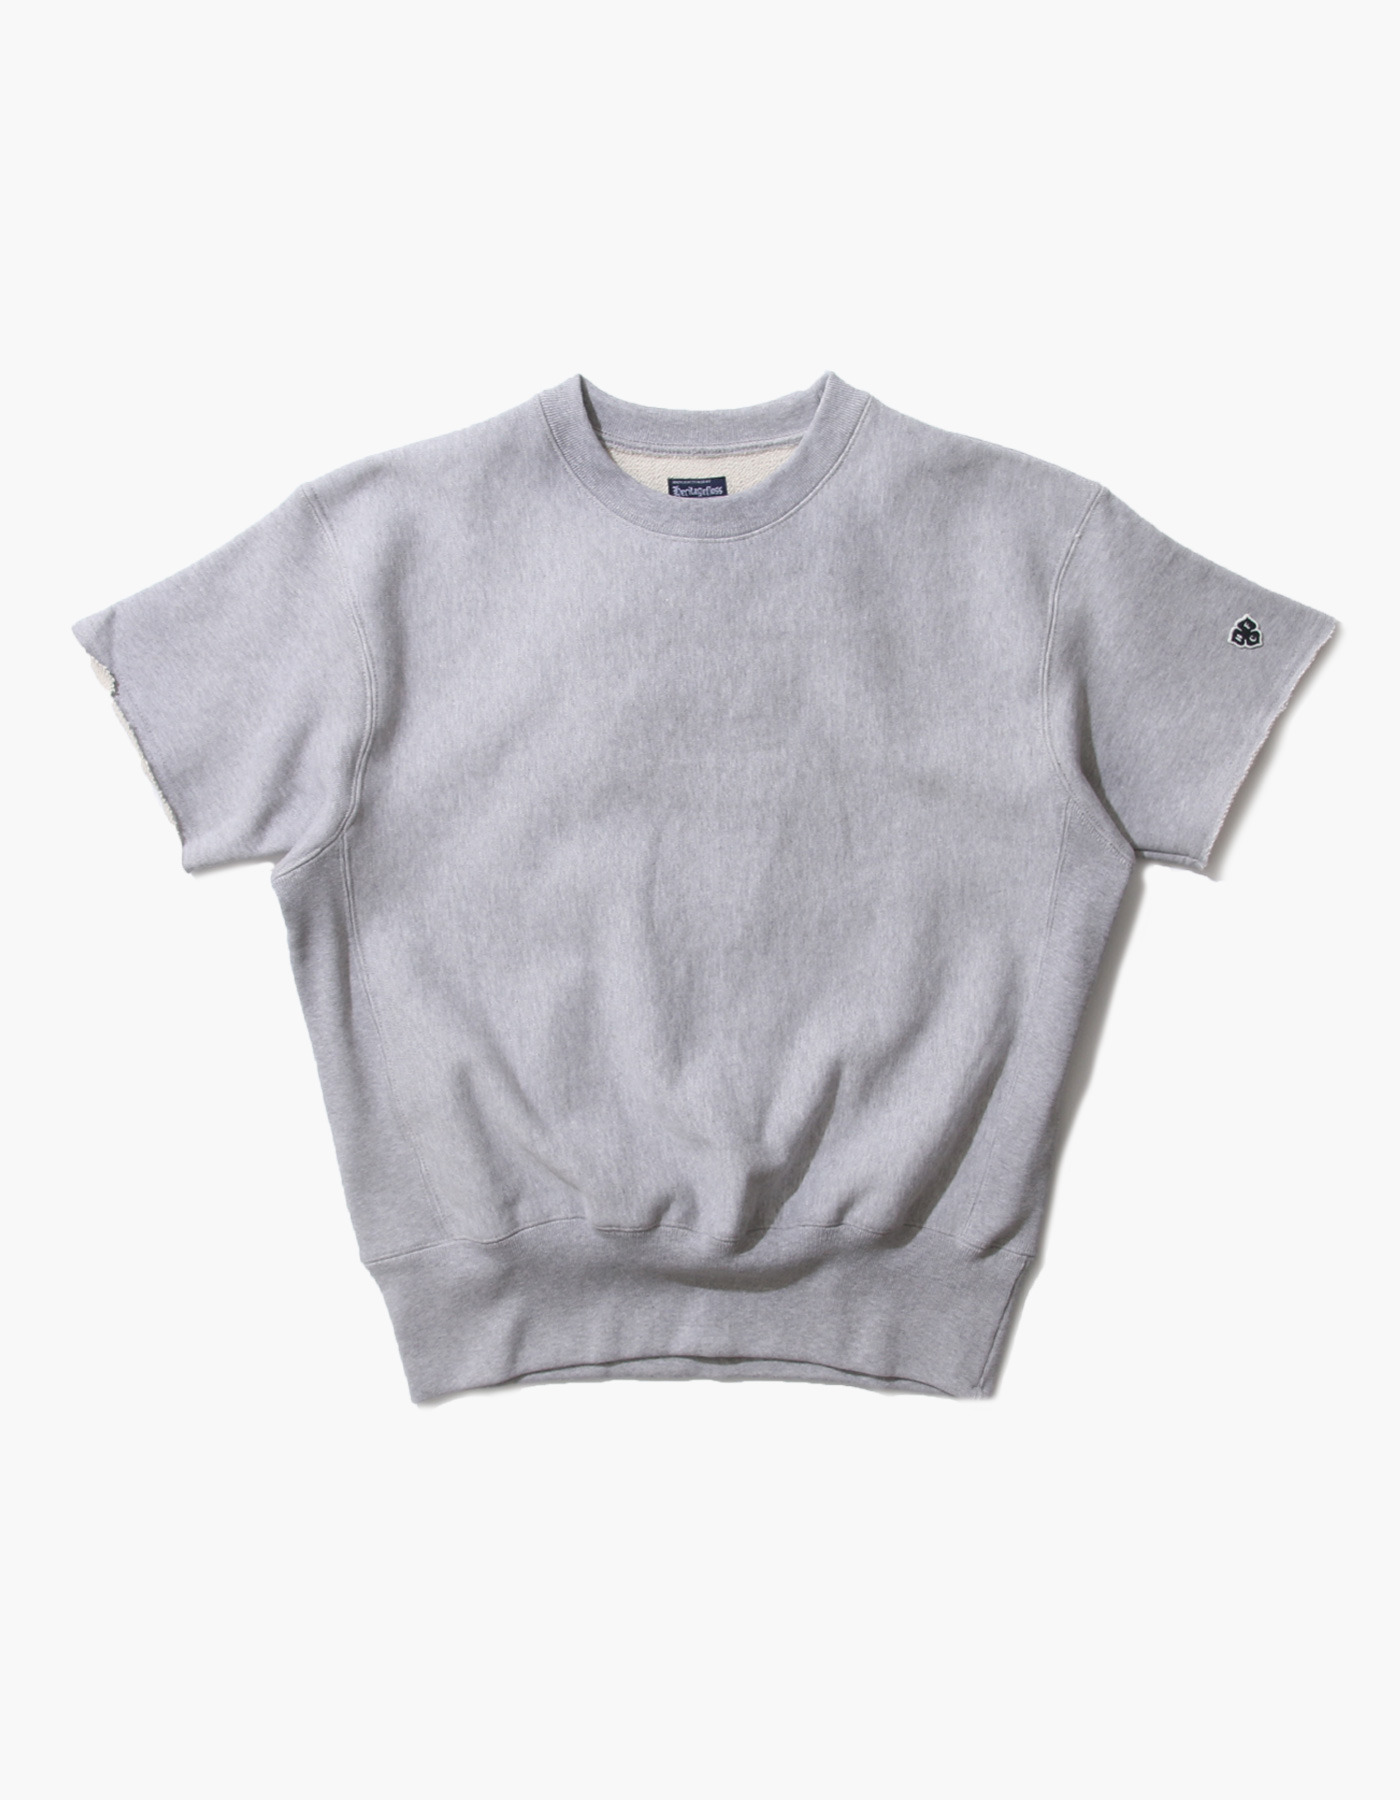 321 GYM CREWNECK HALF SLEEVE / M.GREY (5%)